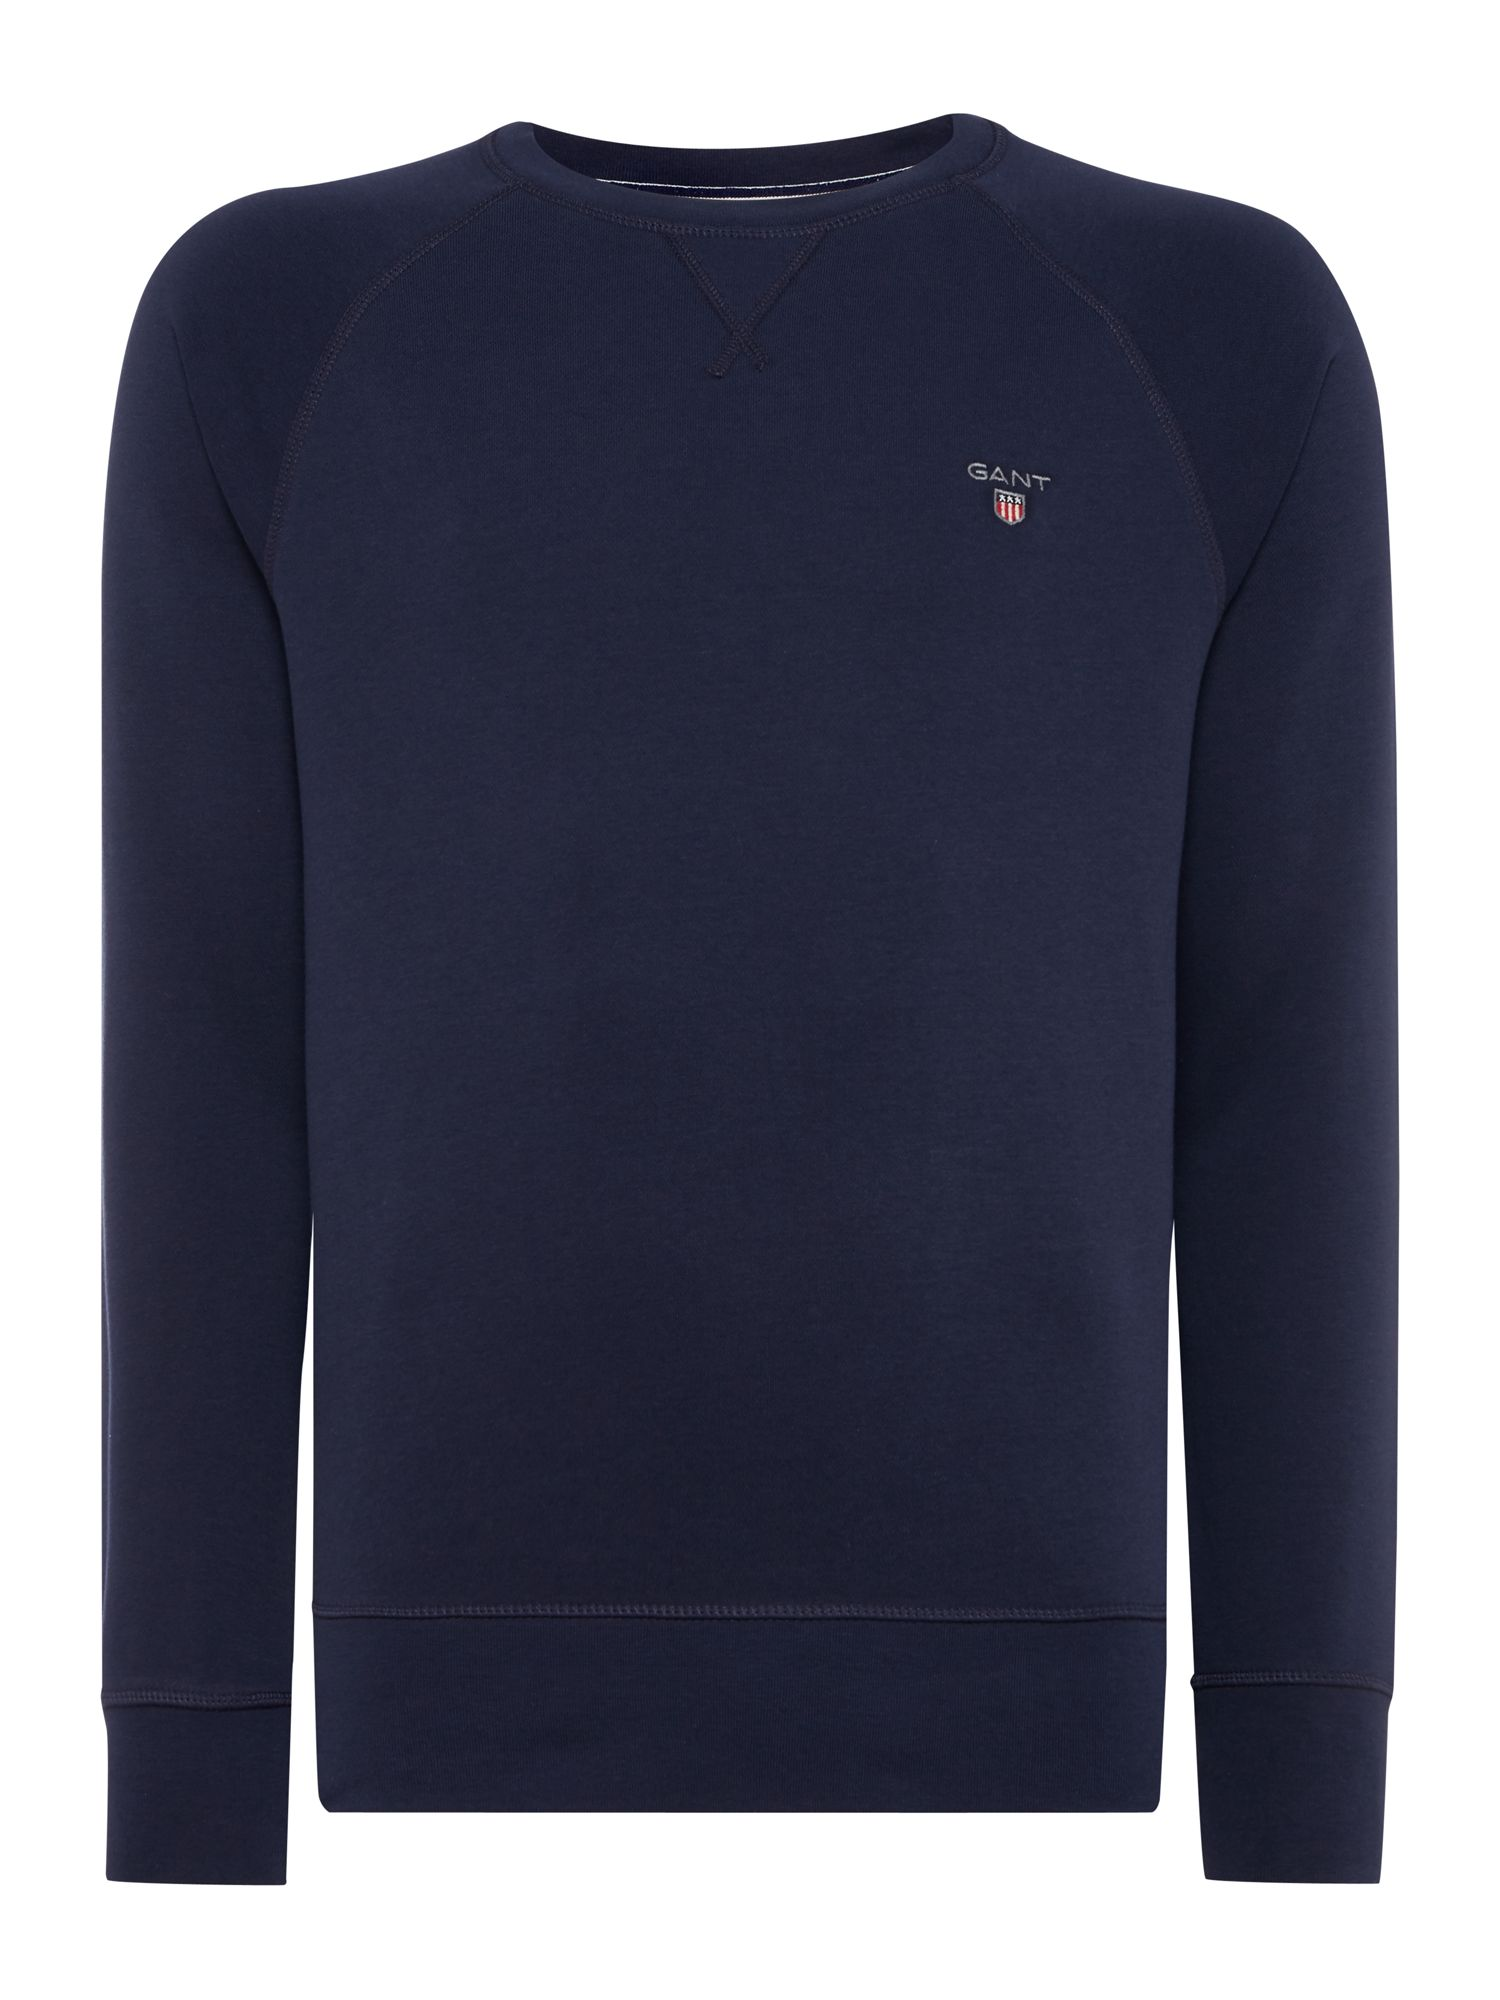 Men's Gant Original Crew Neck Sweat, Blue